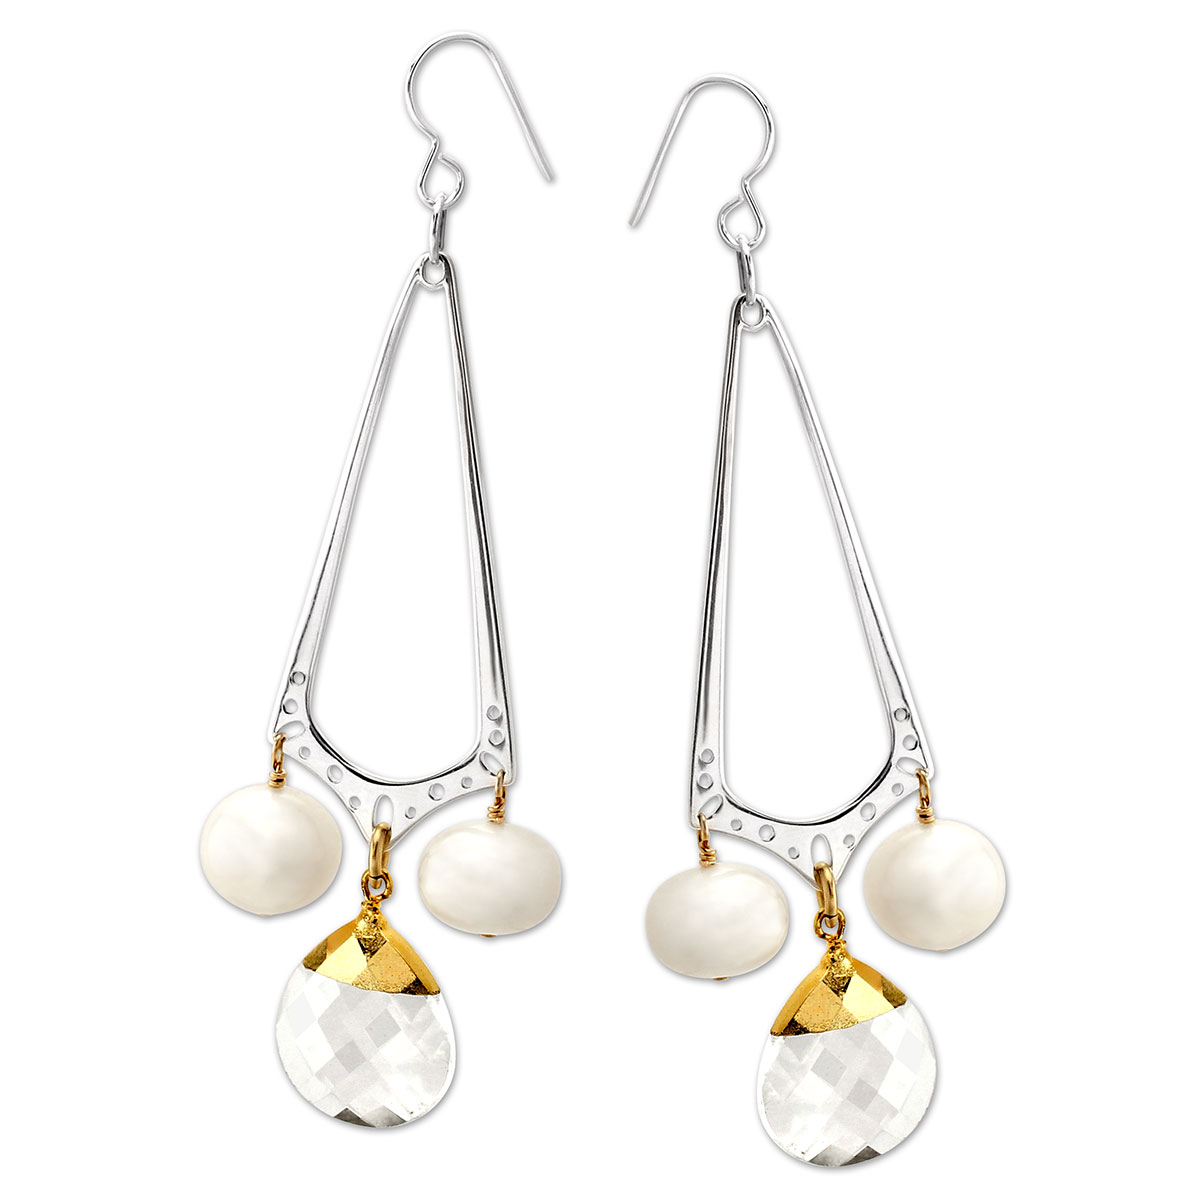 341482-Crystal & Pearl Earrings